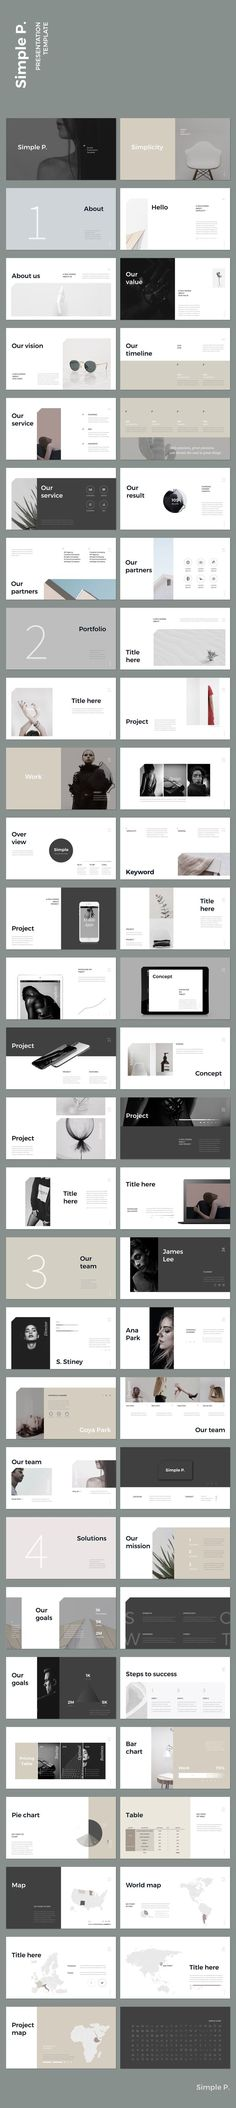 Simple & Minimal #keynote #presentation #simple #minimal #portfolio #business #marketing